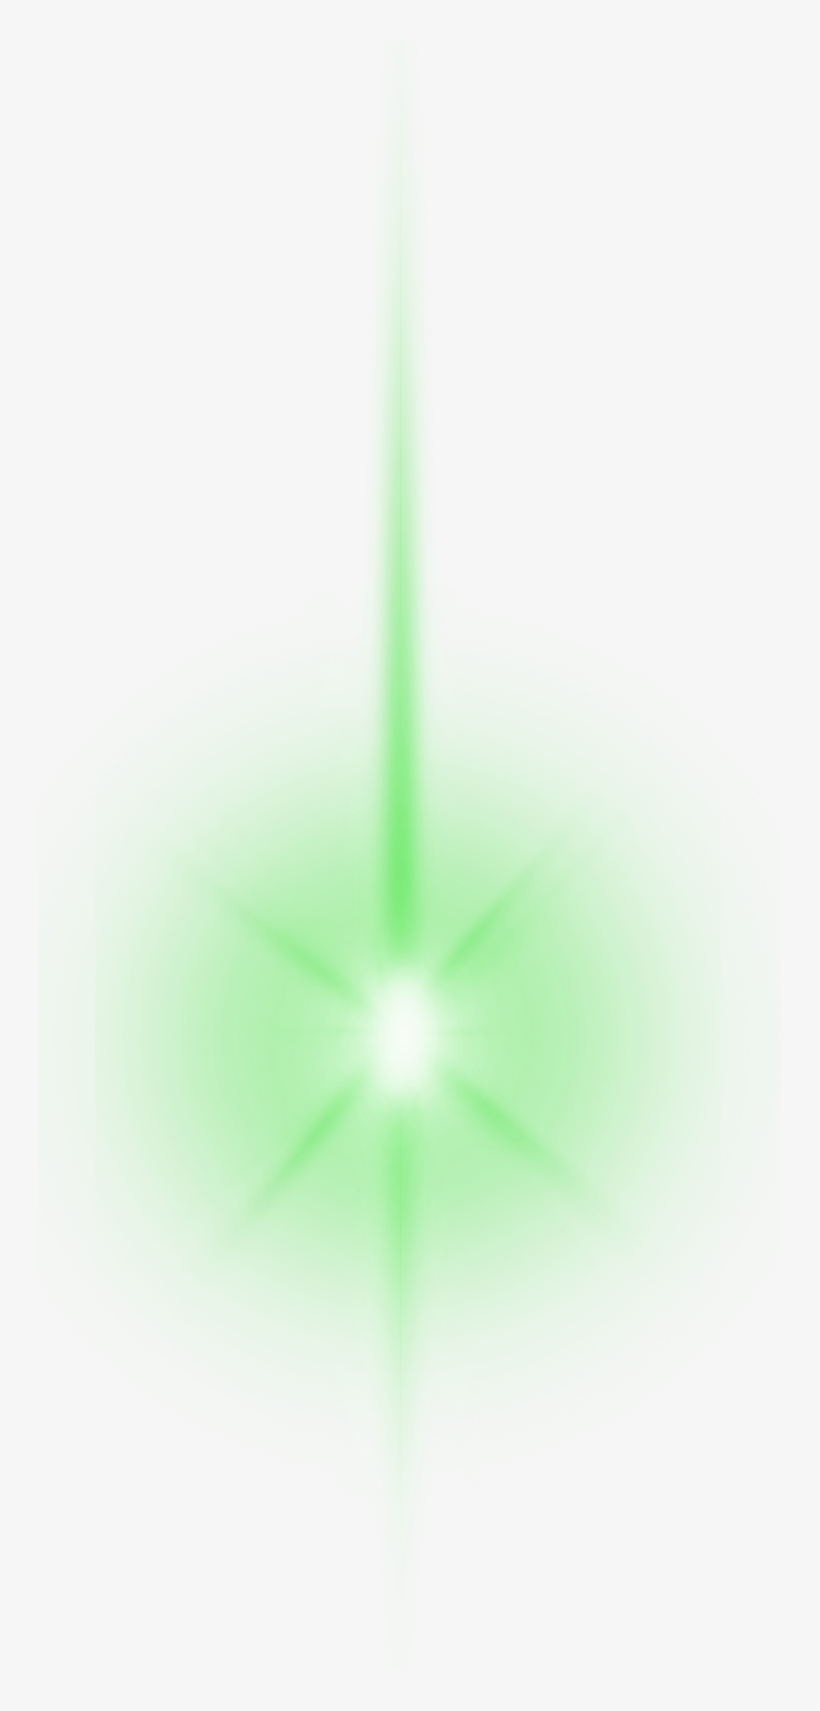 Laser eyes clipart white background.